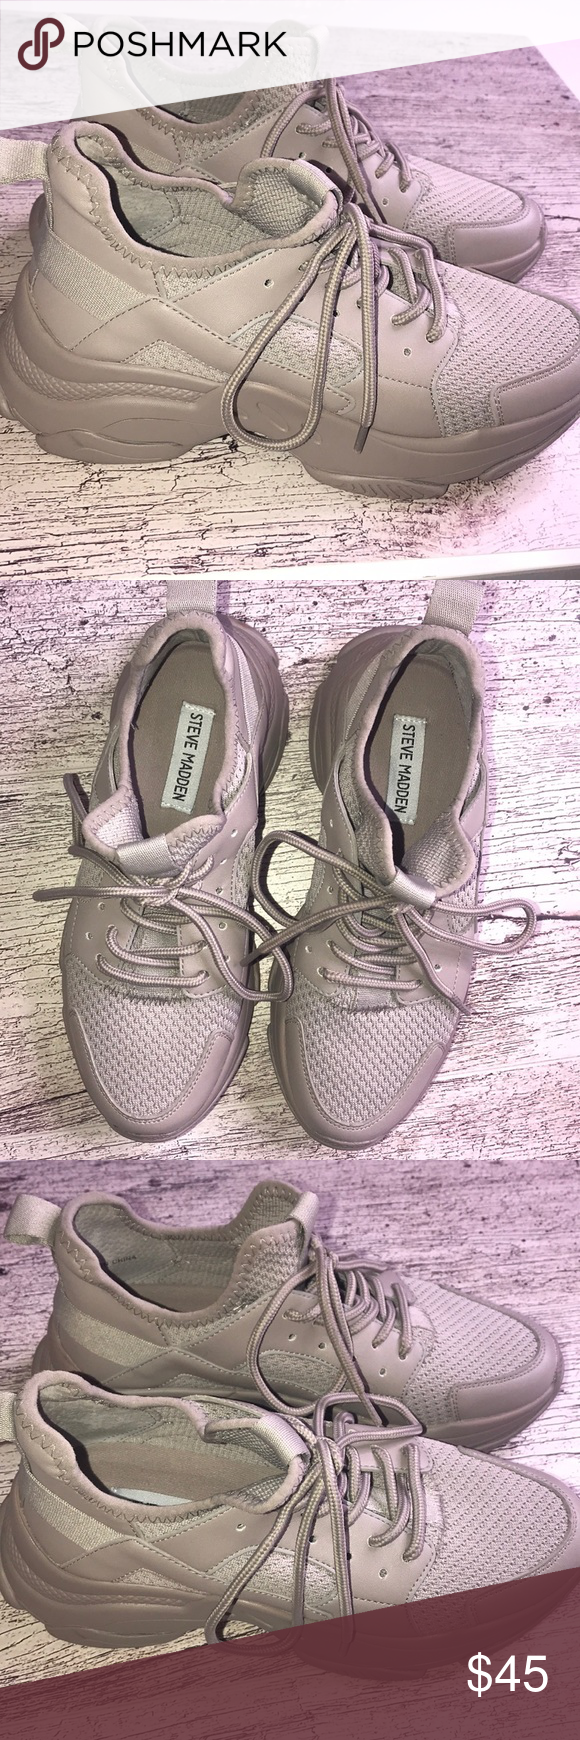 Steve Madden Myles Taupe tennis shoes